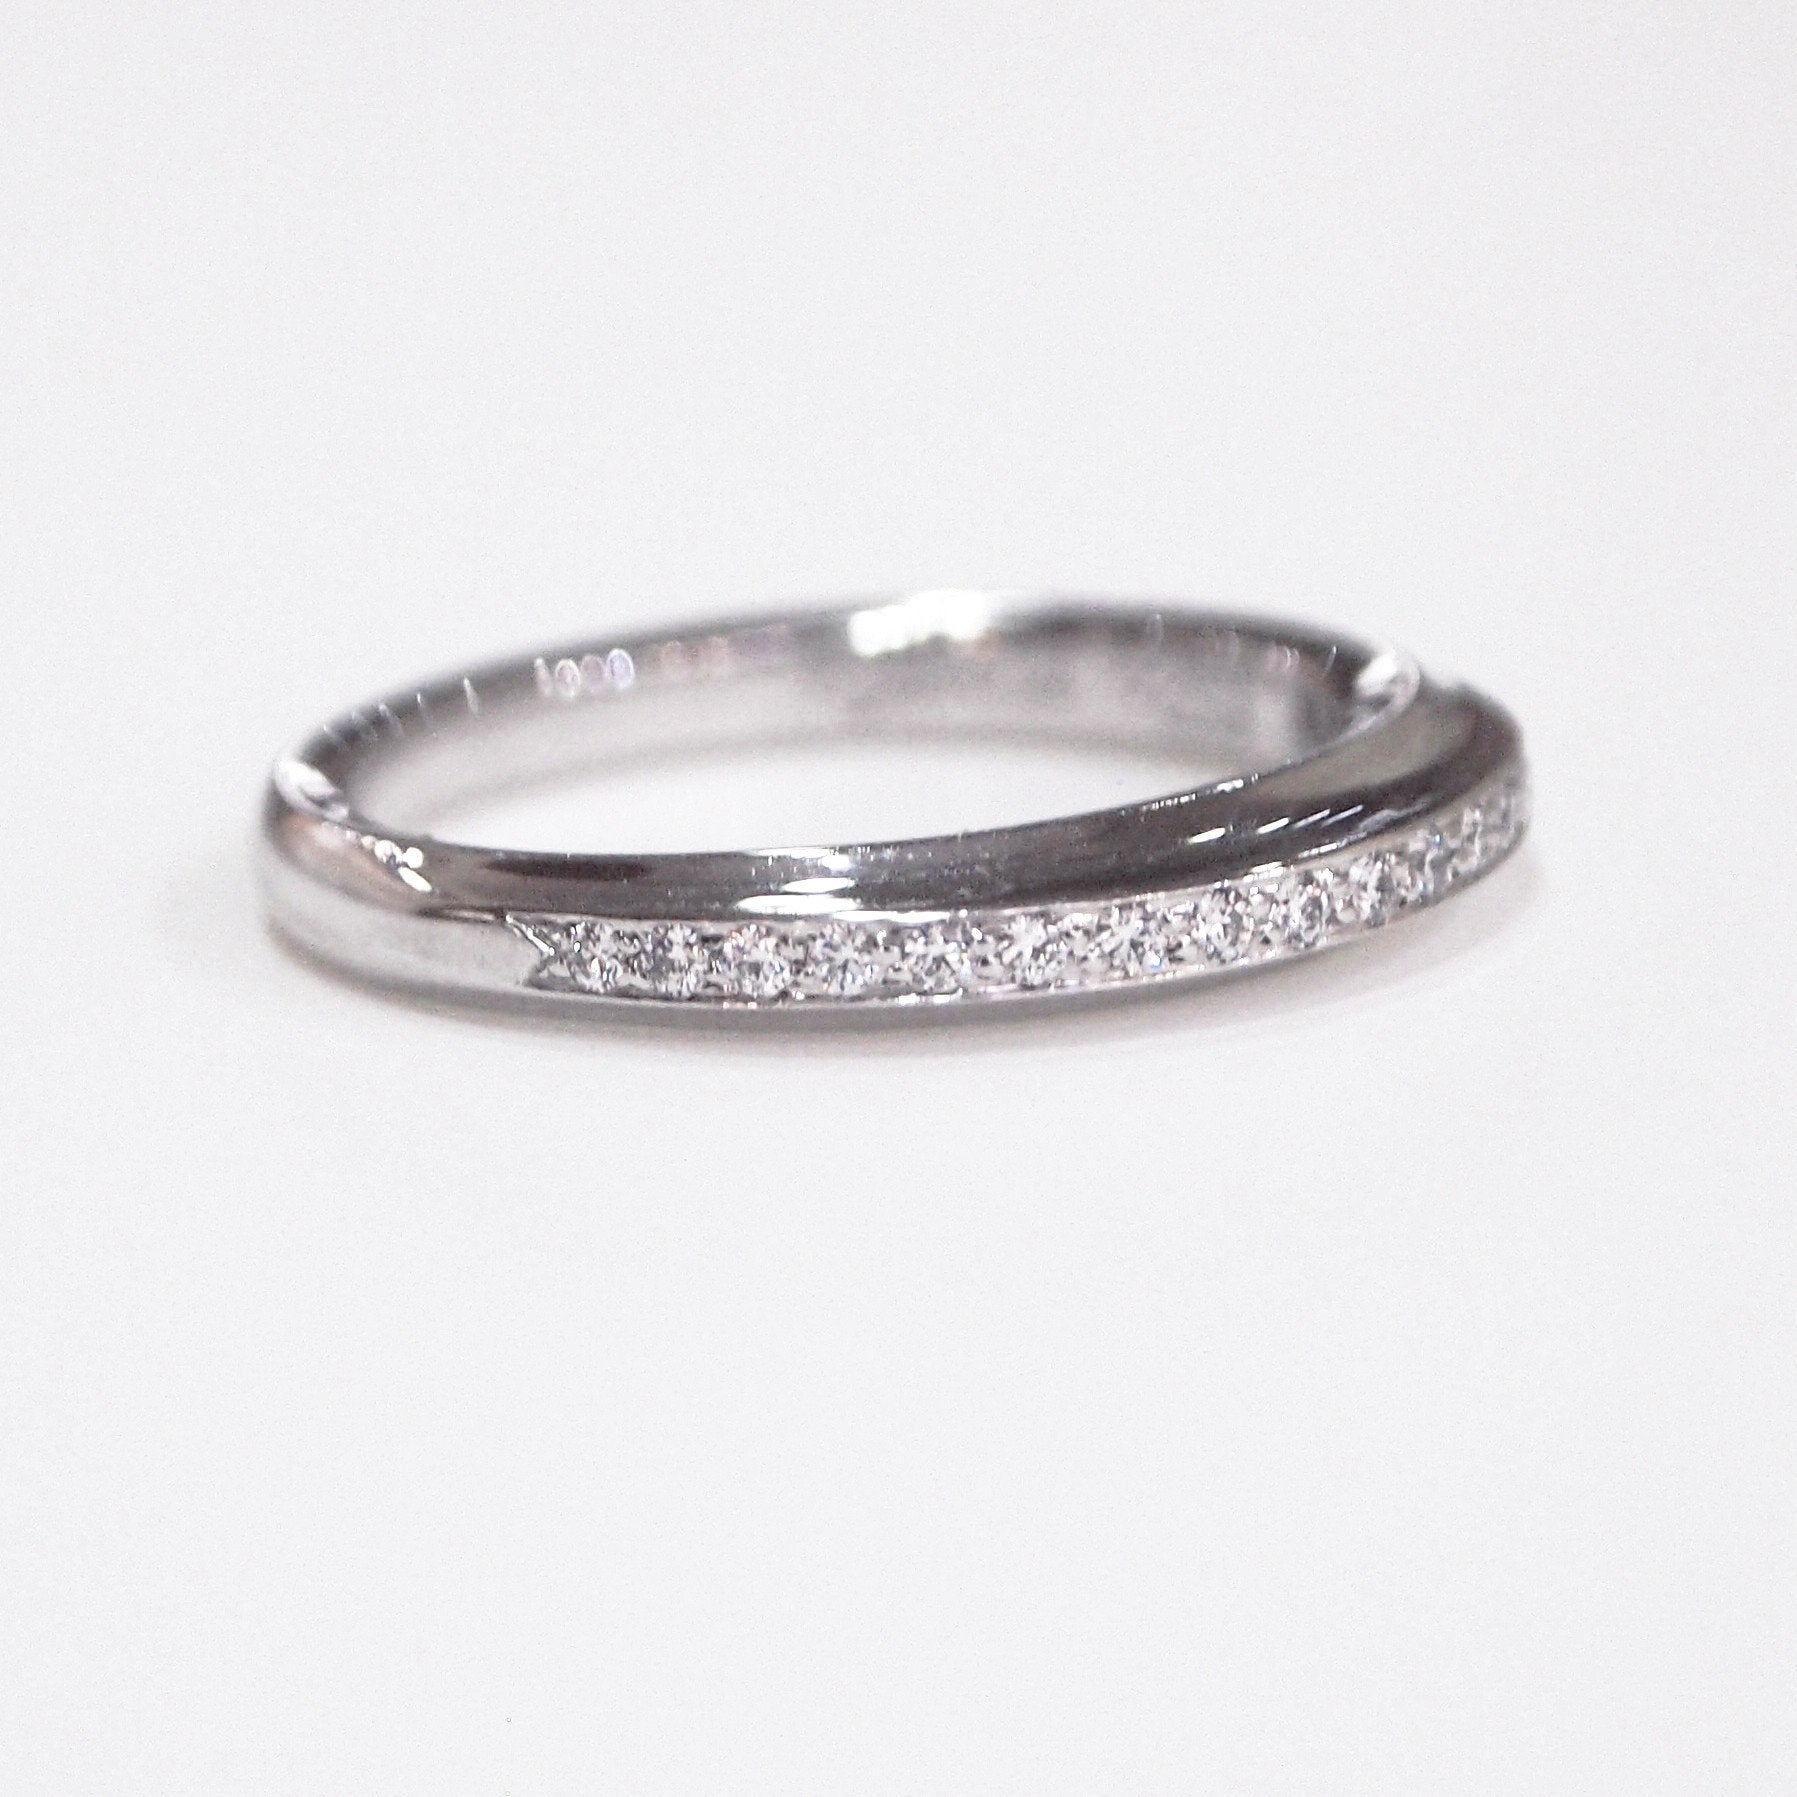 bands new wedding wearing jewelry ring fine rings with engagement full stock band diamond of amp